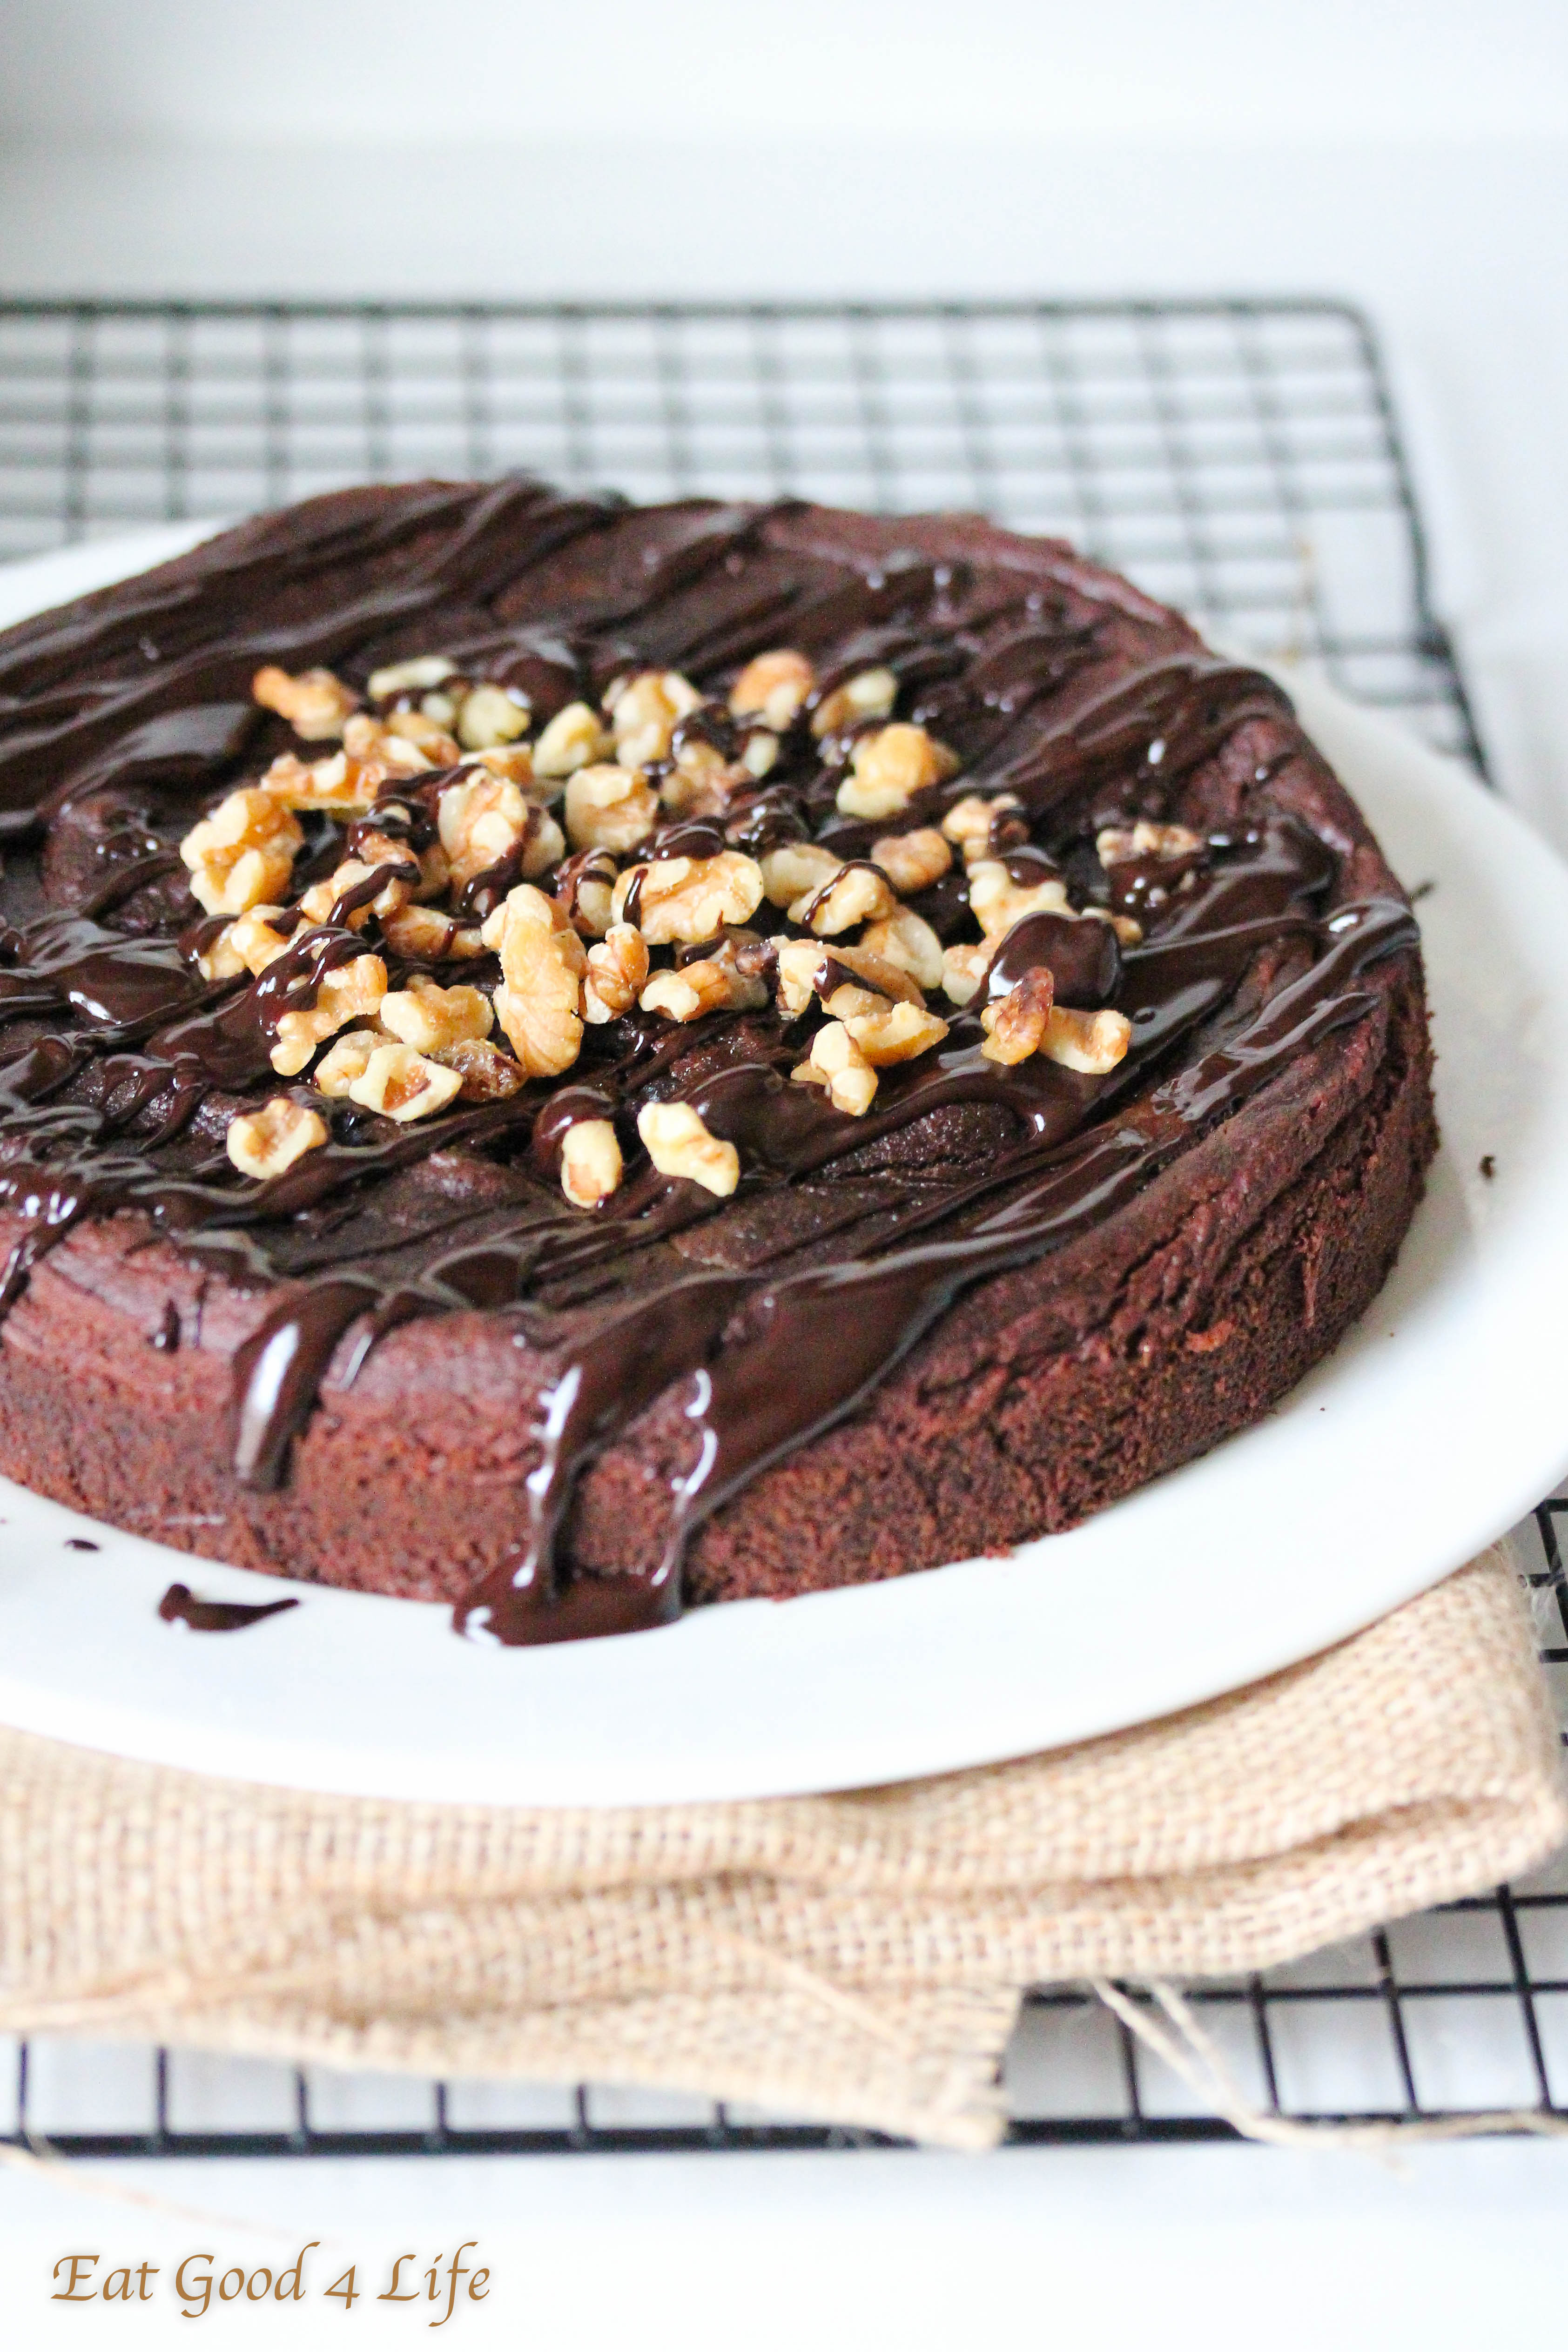 Holly molly this gluten free chocolate avocado cake is out of this ...